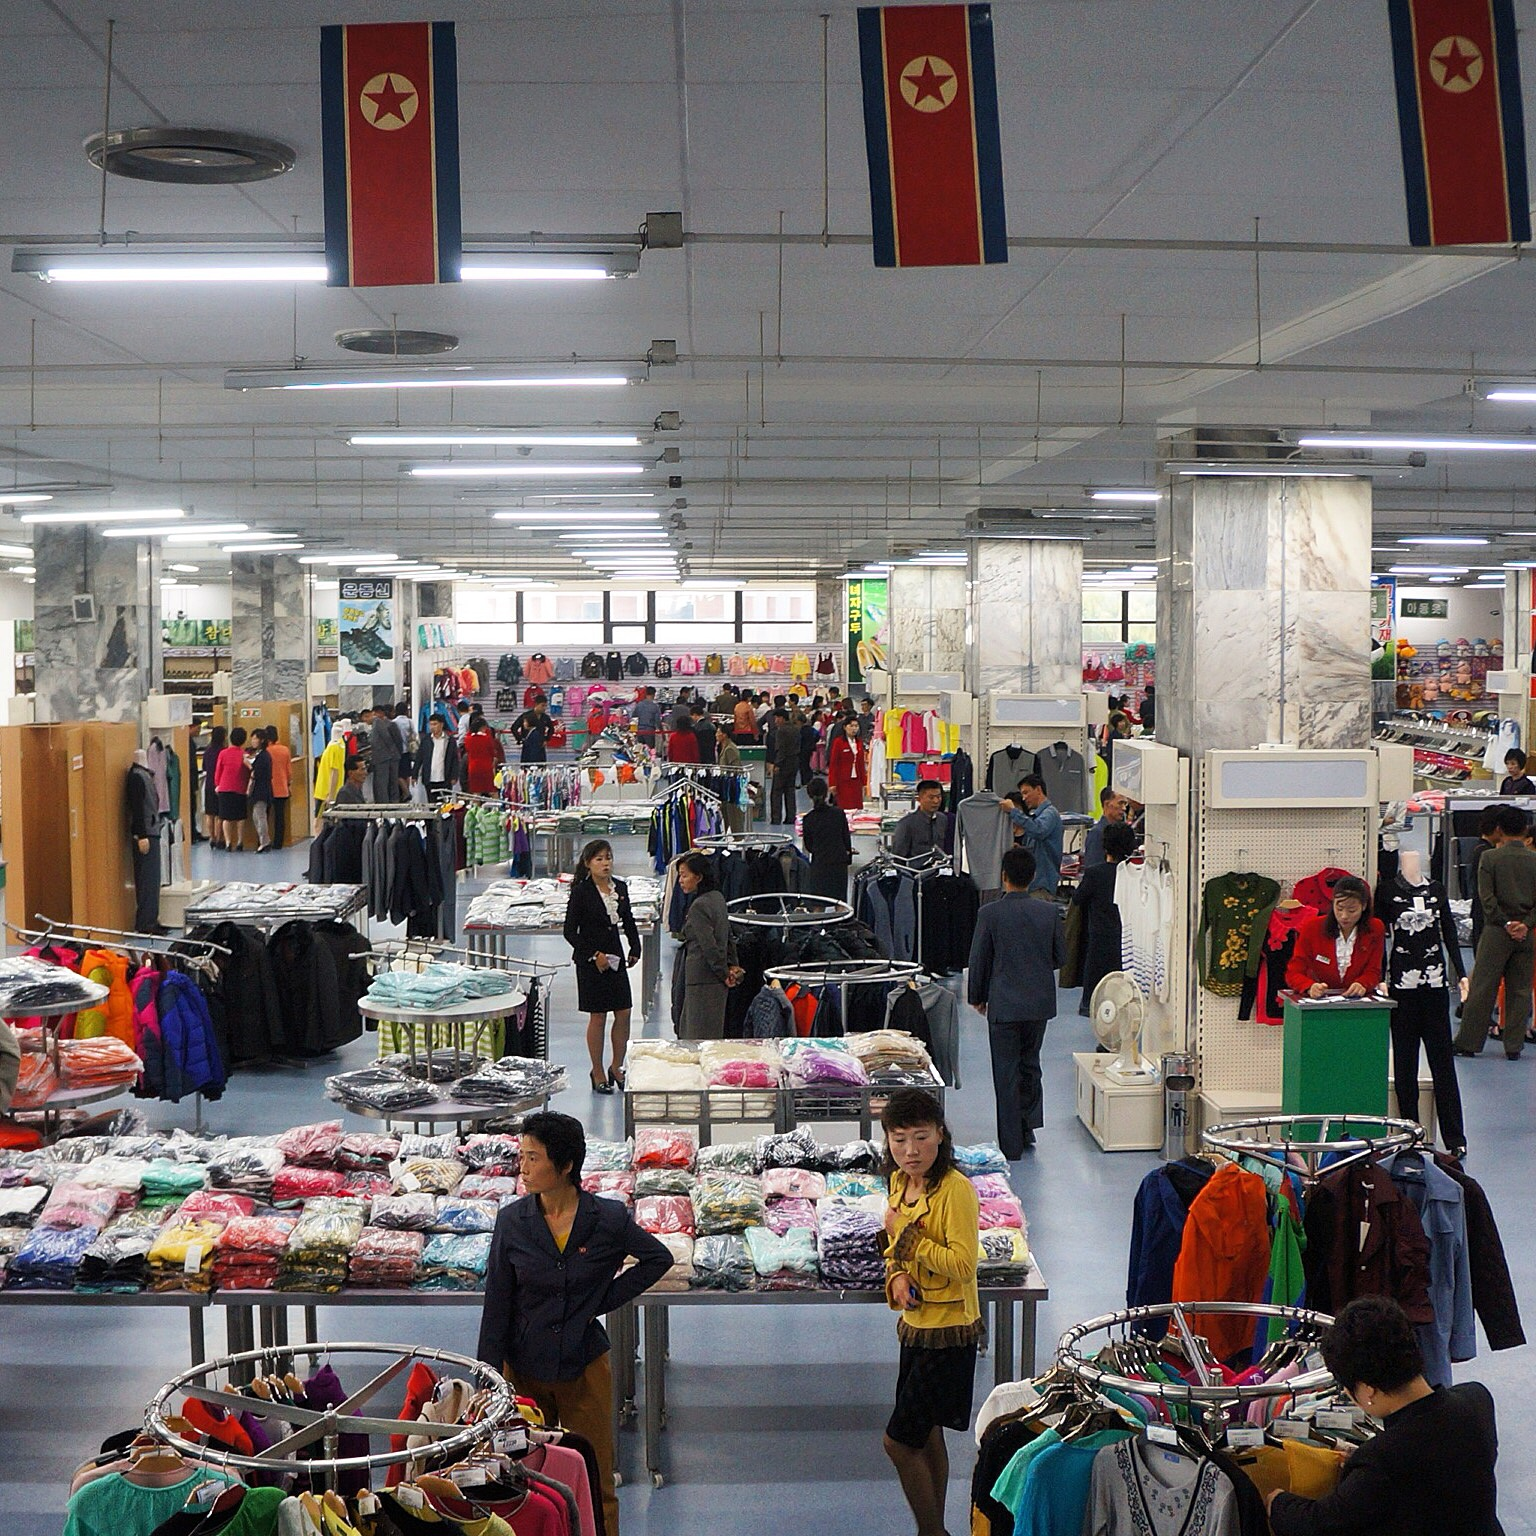 North Koreans shop in the clothing section of Kwangbok Market in Pyongyang. Koreans love their fashion, even in the North.